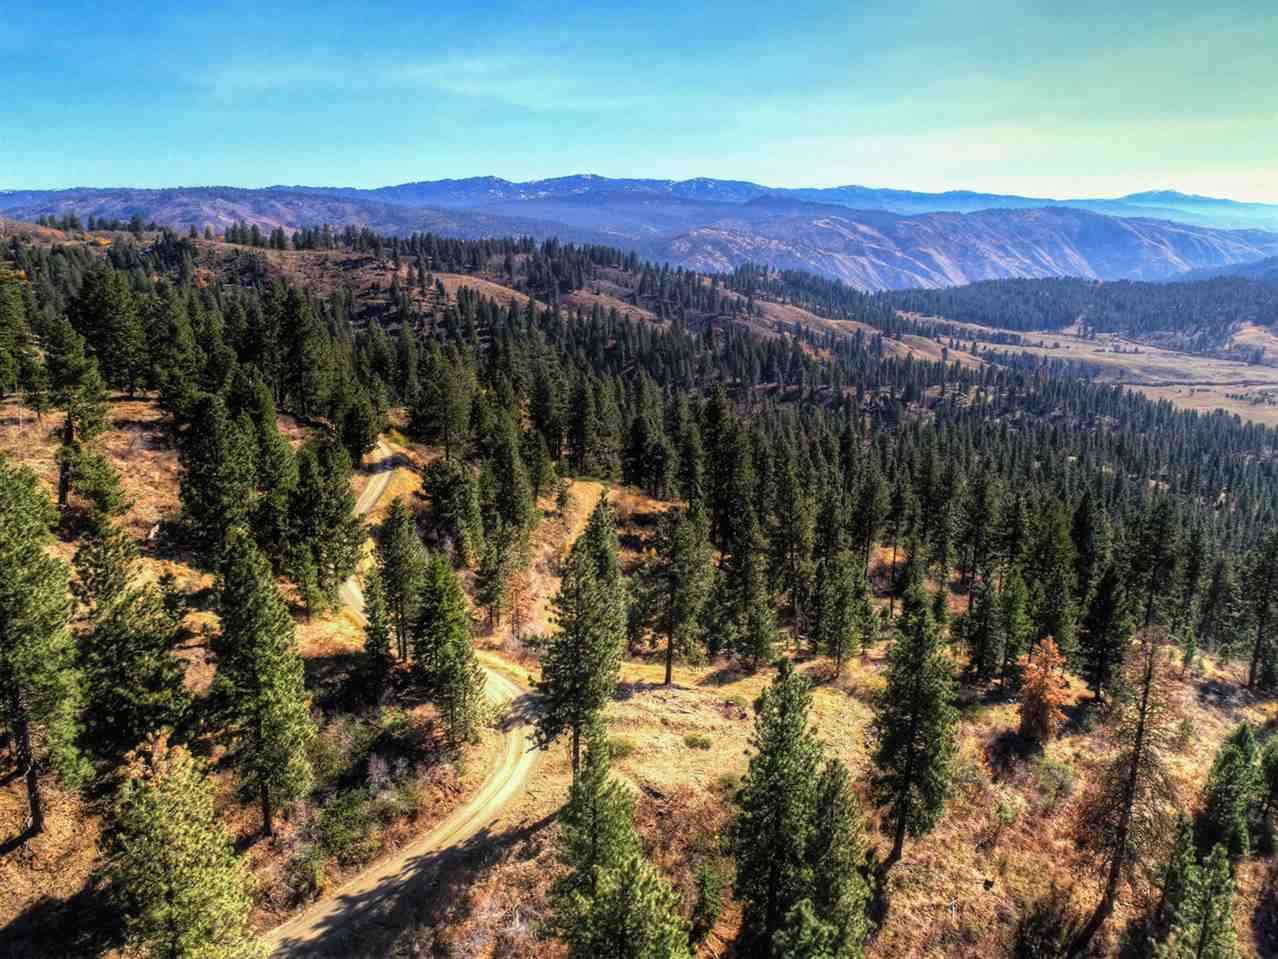 Land for Sale at LOT 17 Payette River Ranchettes LOT 17 Payette River Ranchettes Banks, Idaho 83602